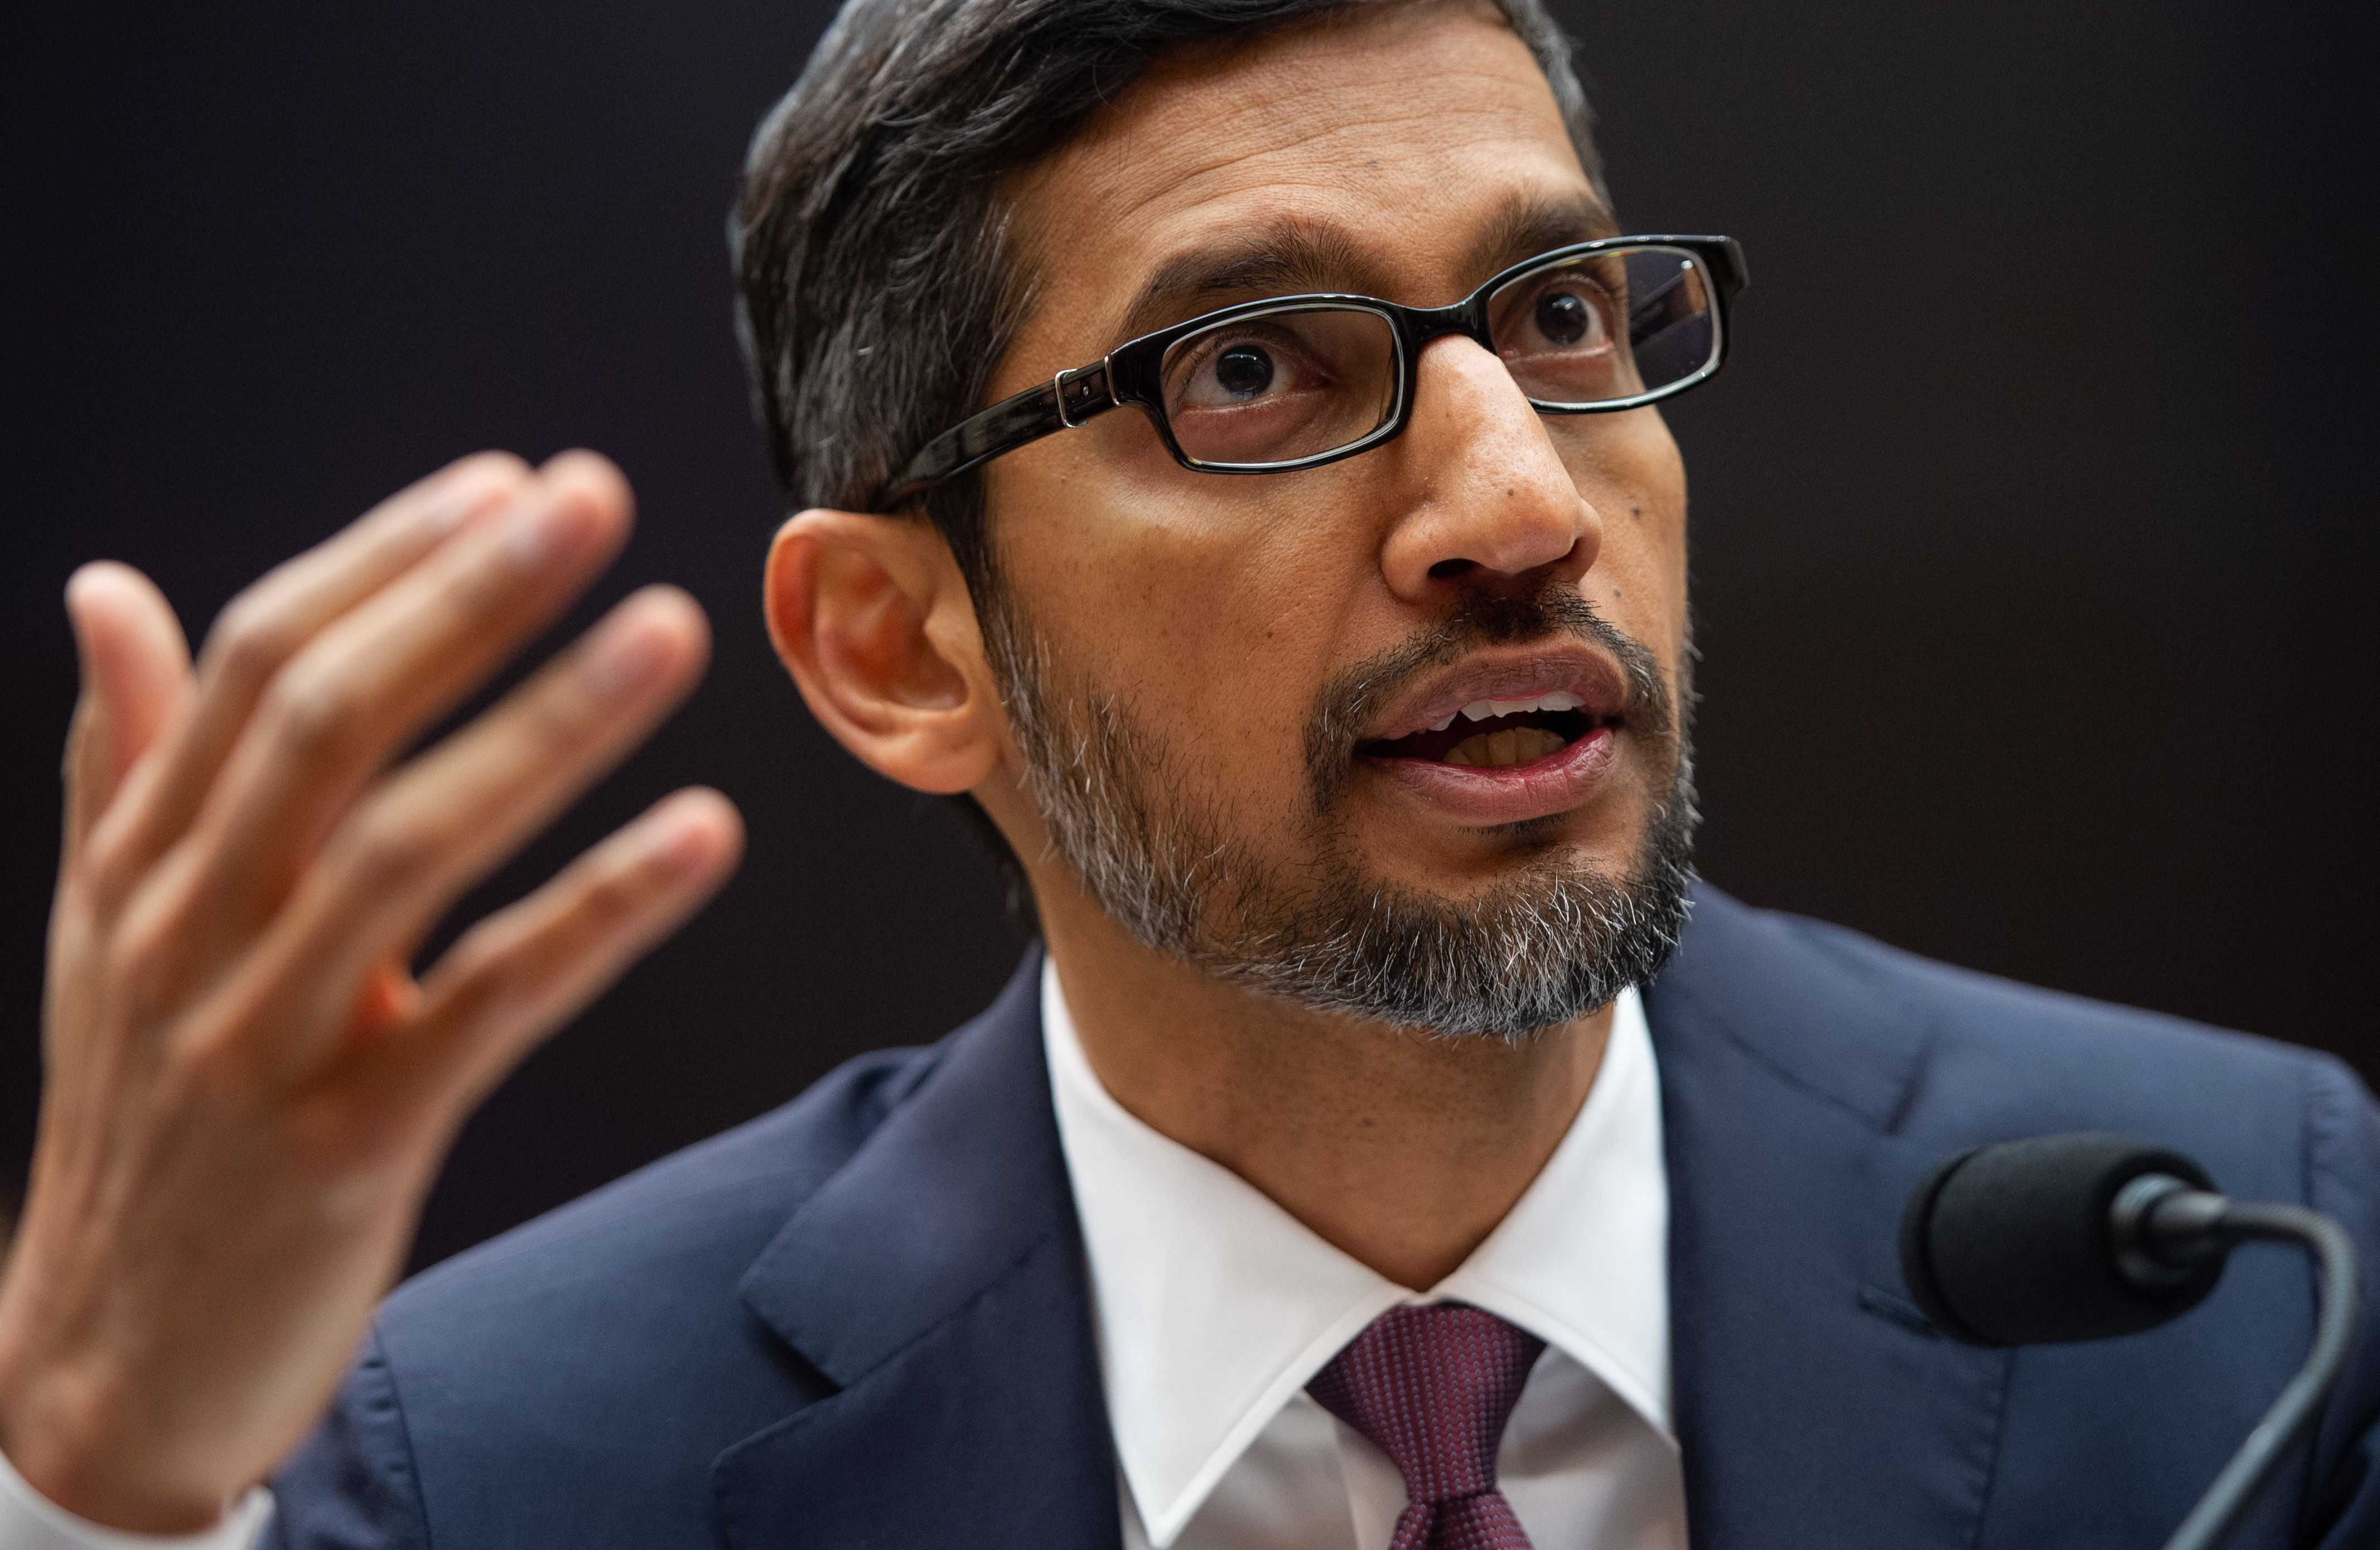 Google CEO says 'privacy cannot be a luxury good'